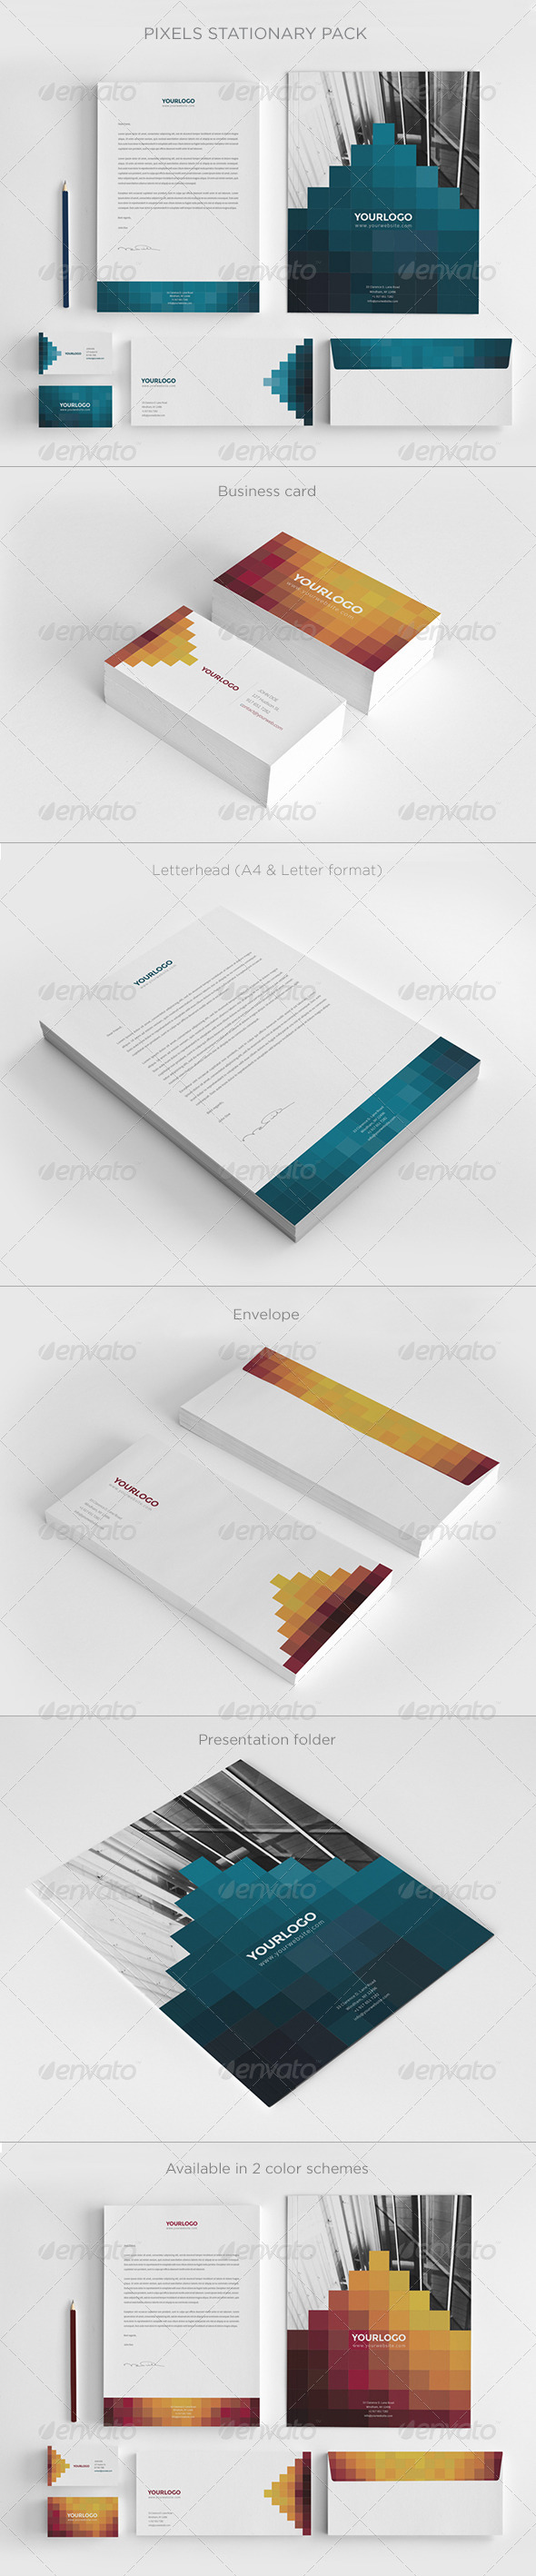 Pixels Stationary Pack - Stationery Print Templates